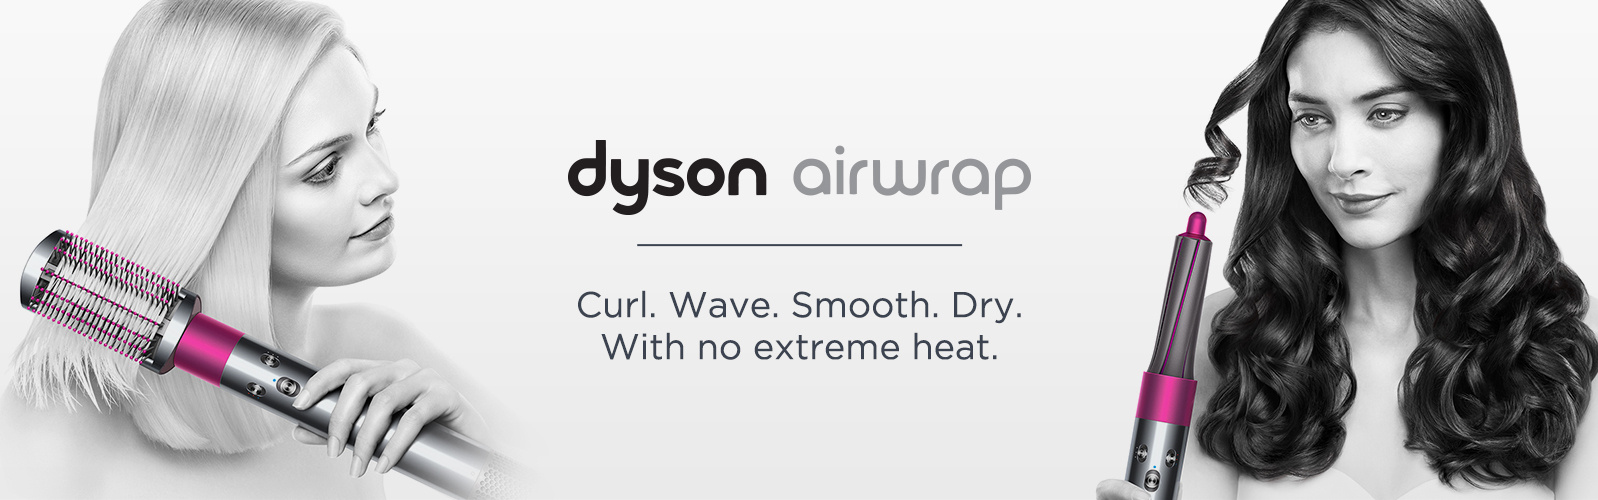 Dyson Airwrap.  Curl. Wave. Smooth. Dry.  With no extreme heat.